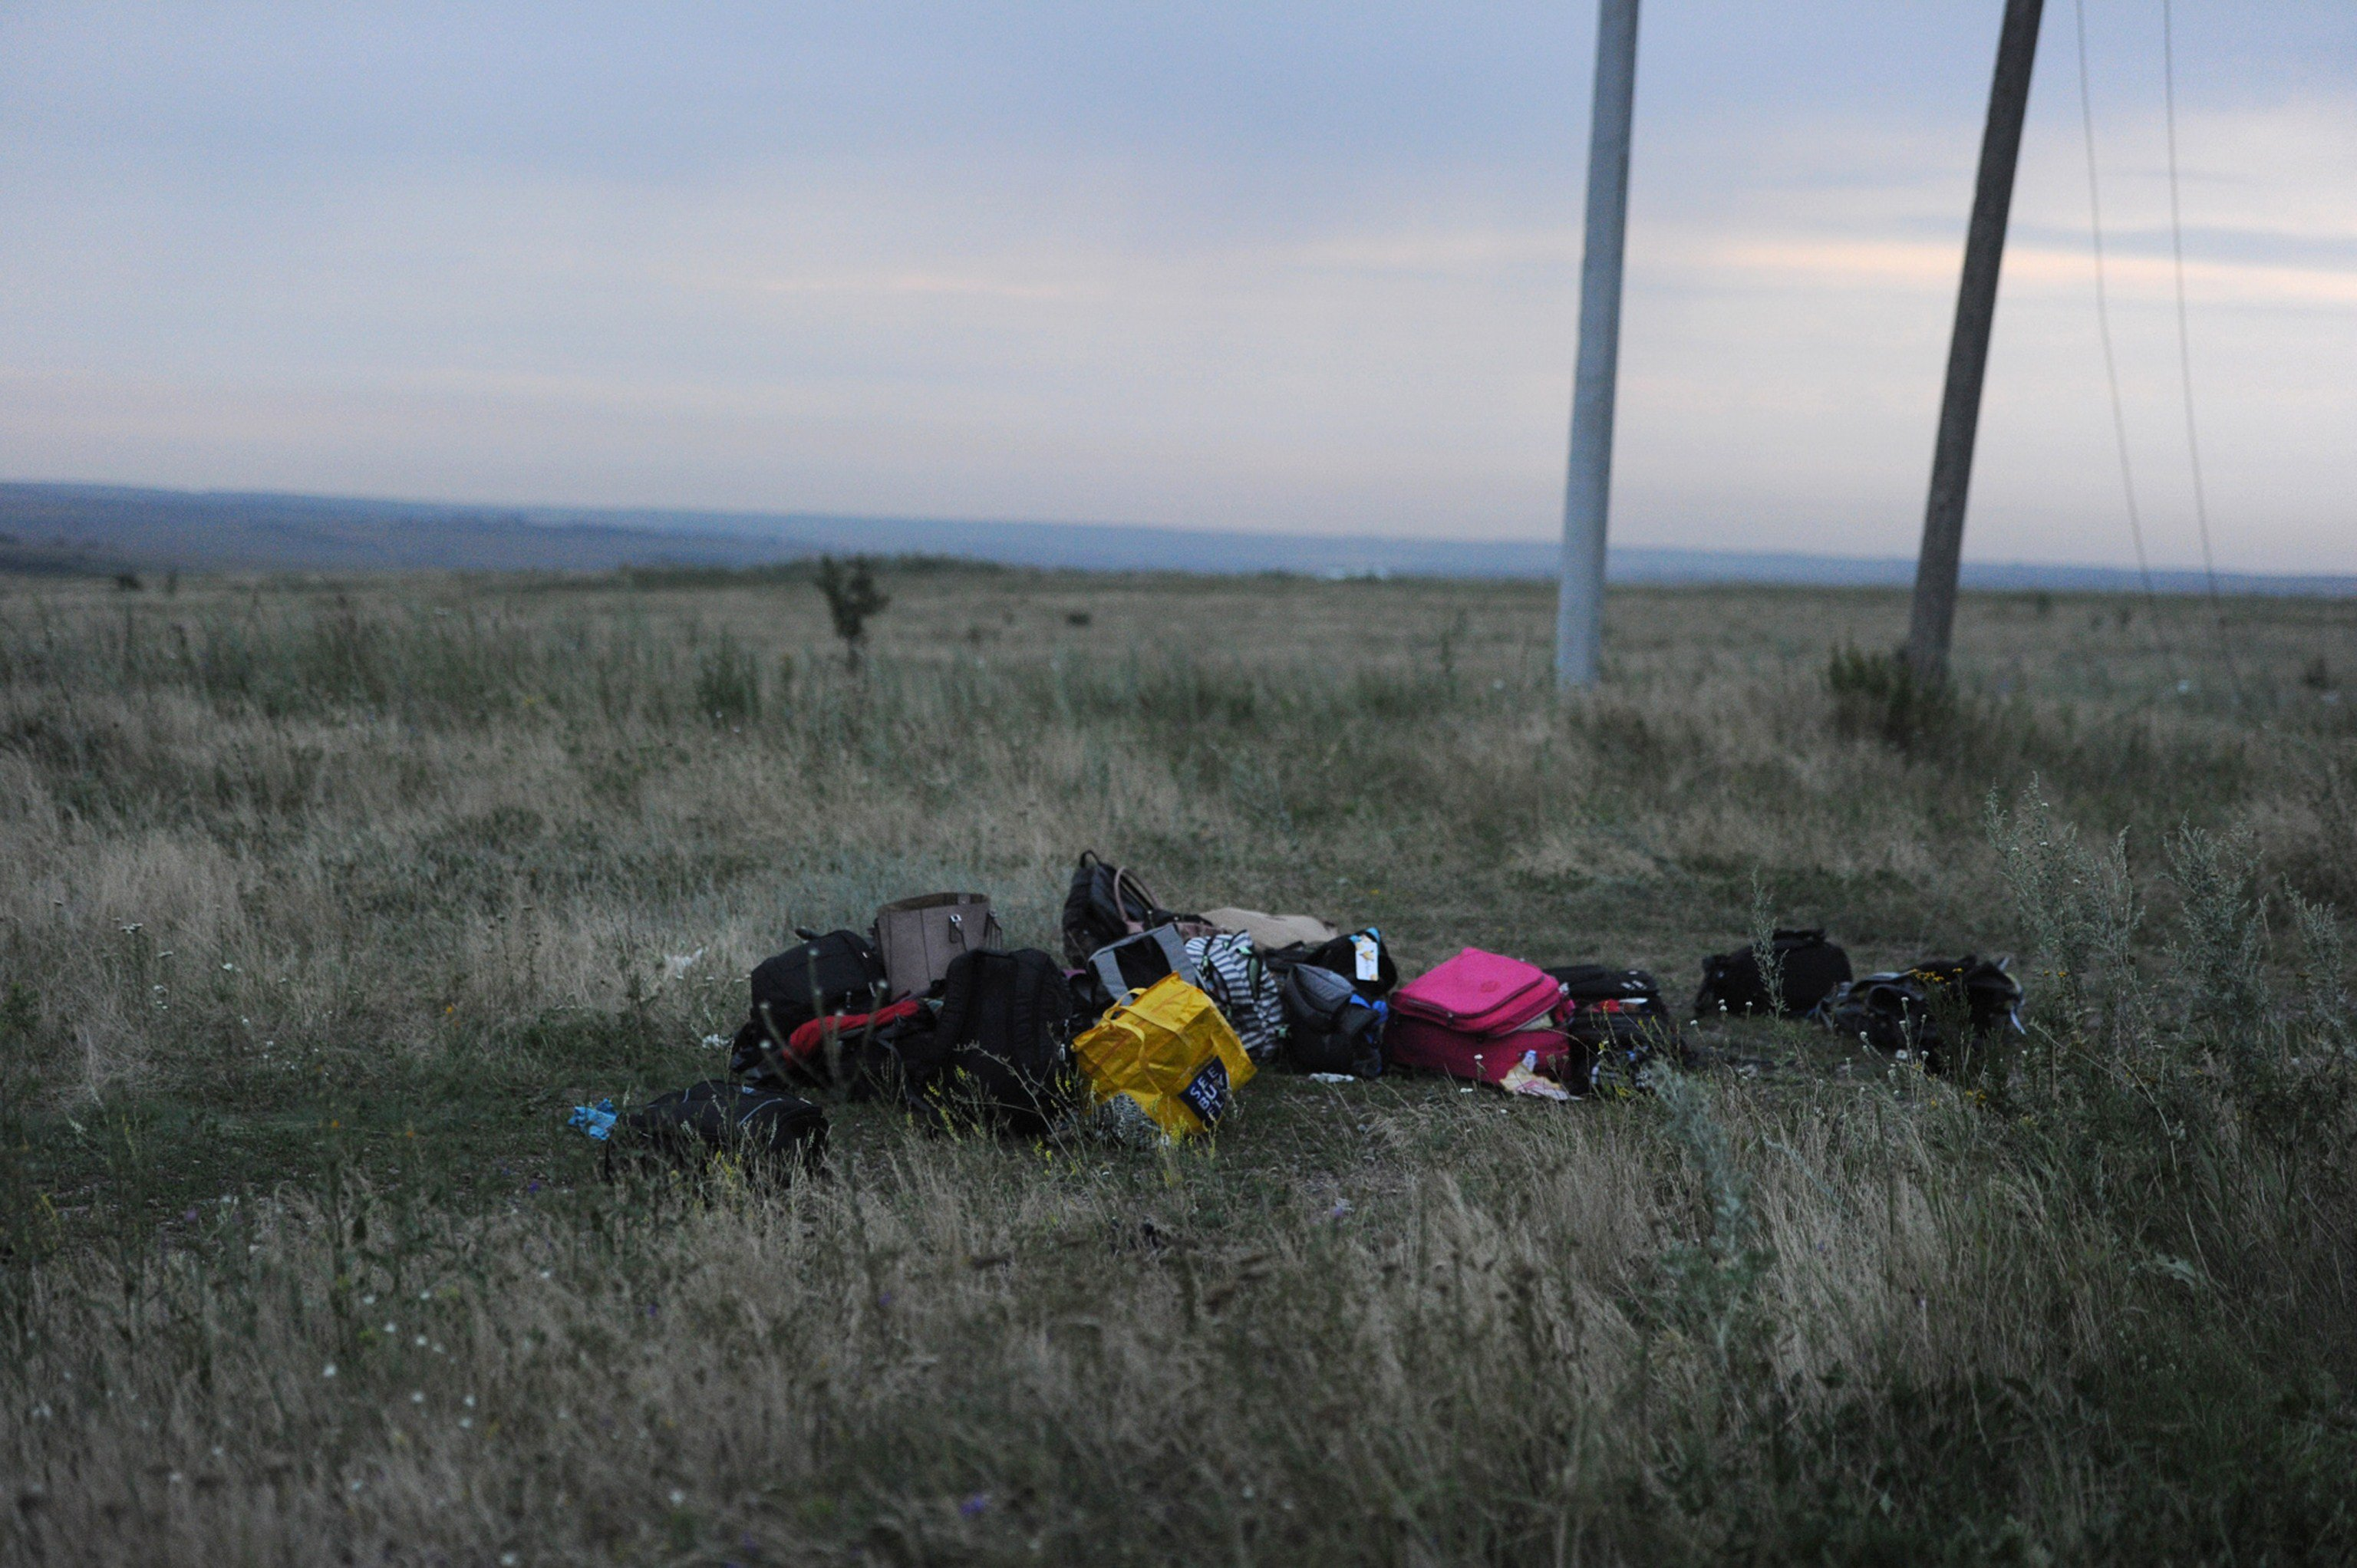 Luggage seen at the crash site the Malaysian airliner carrying 298 people from Amsterdam to Kuala Lumpur, near the town of Shaktarsk, in rebel-held east Ukraine, July 17, 2014